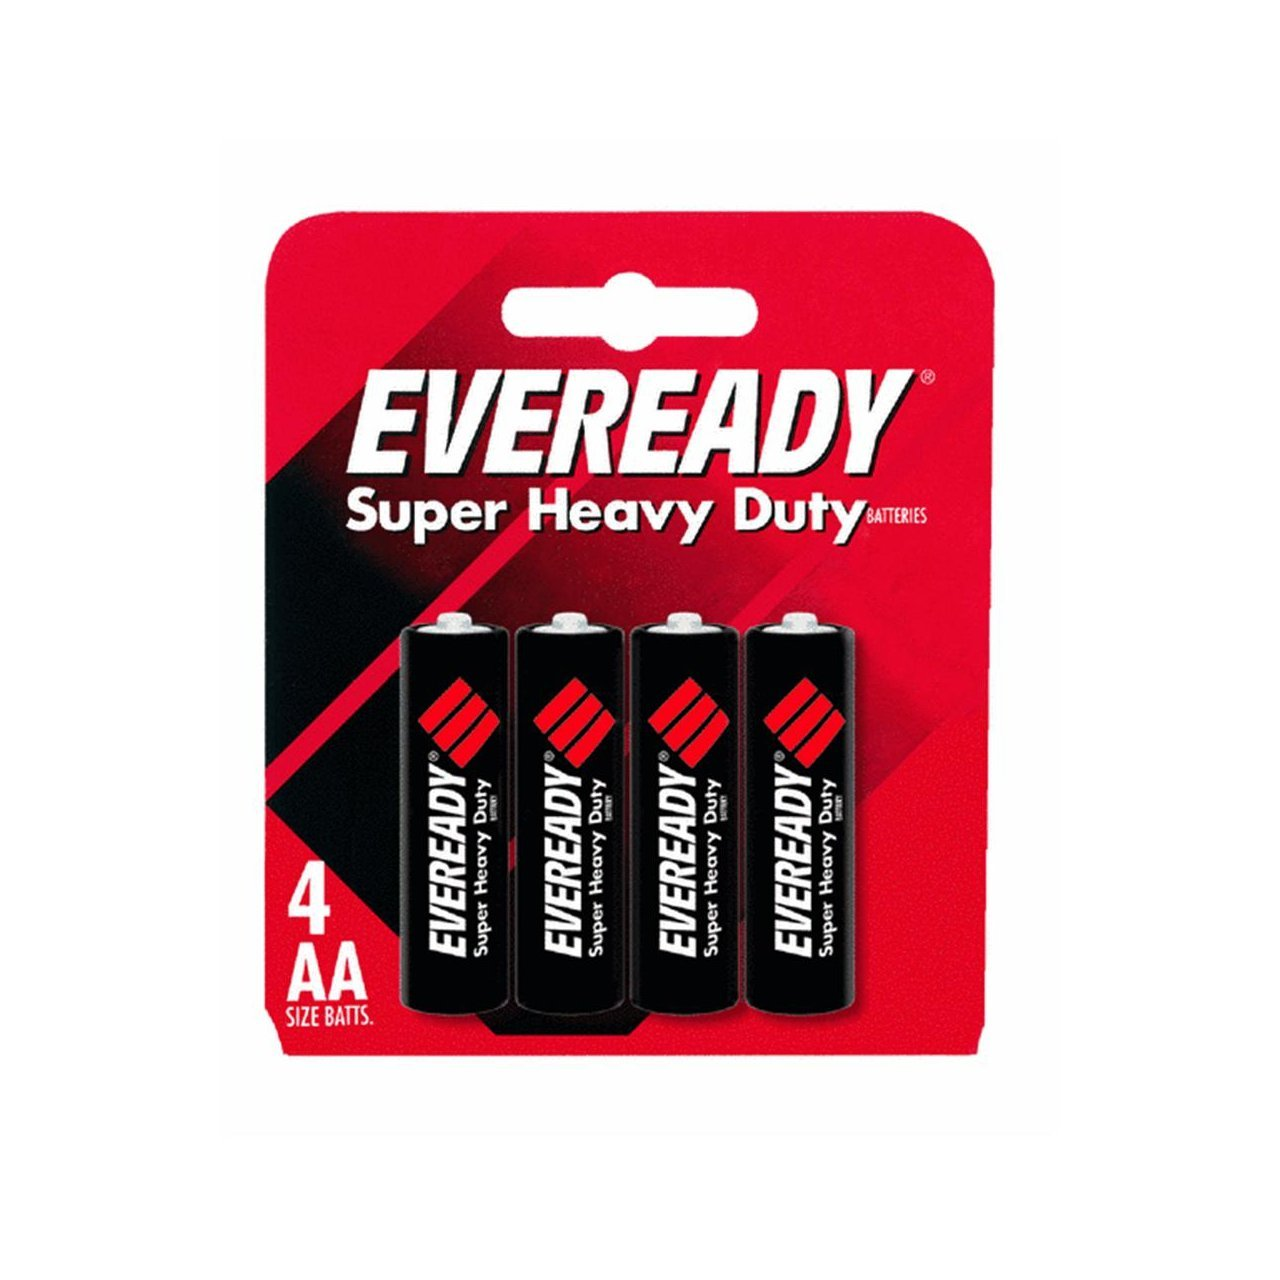 4 Energizer Eveready AA batteries in retail card